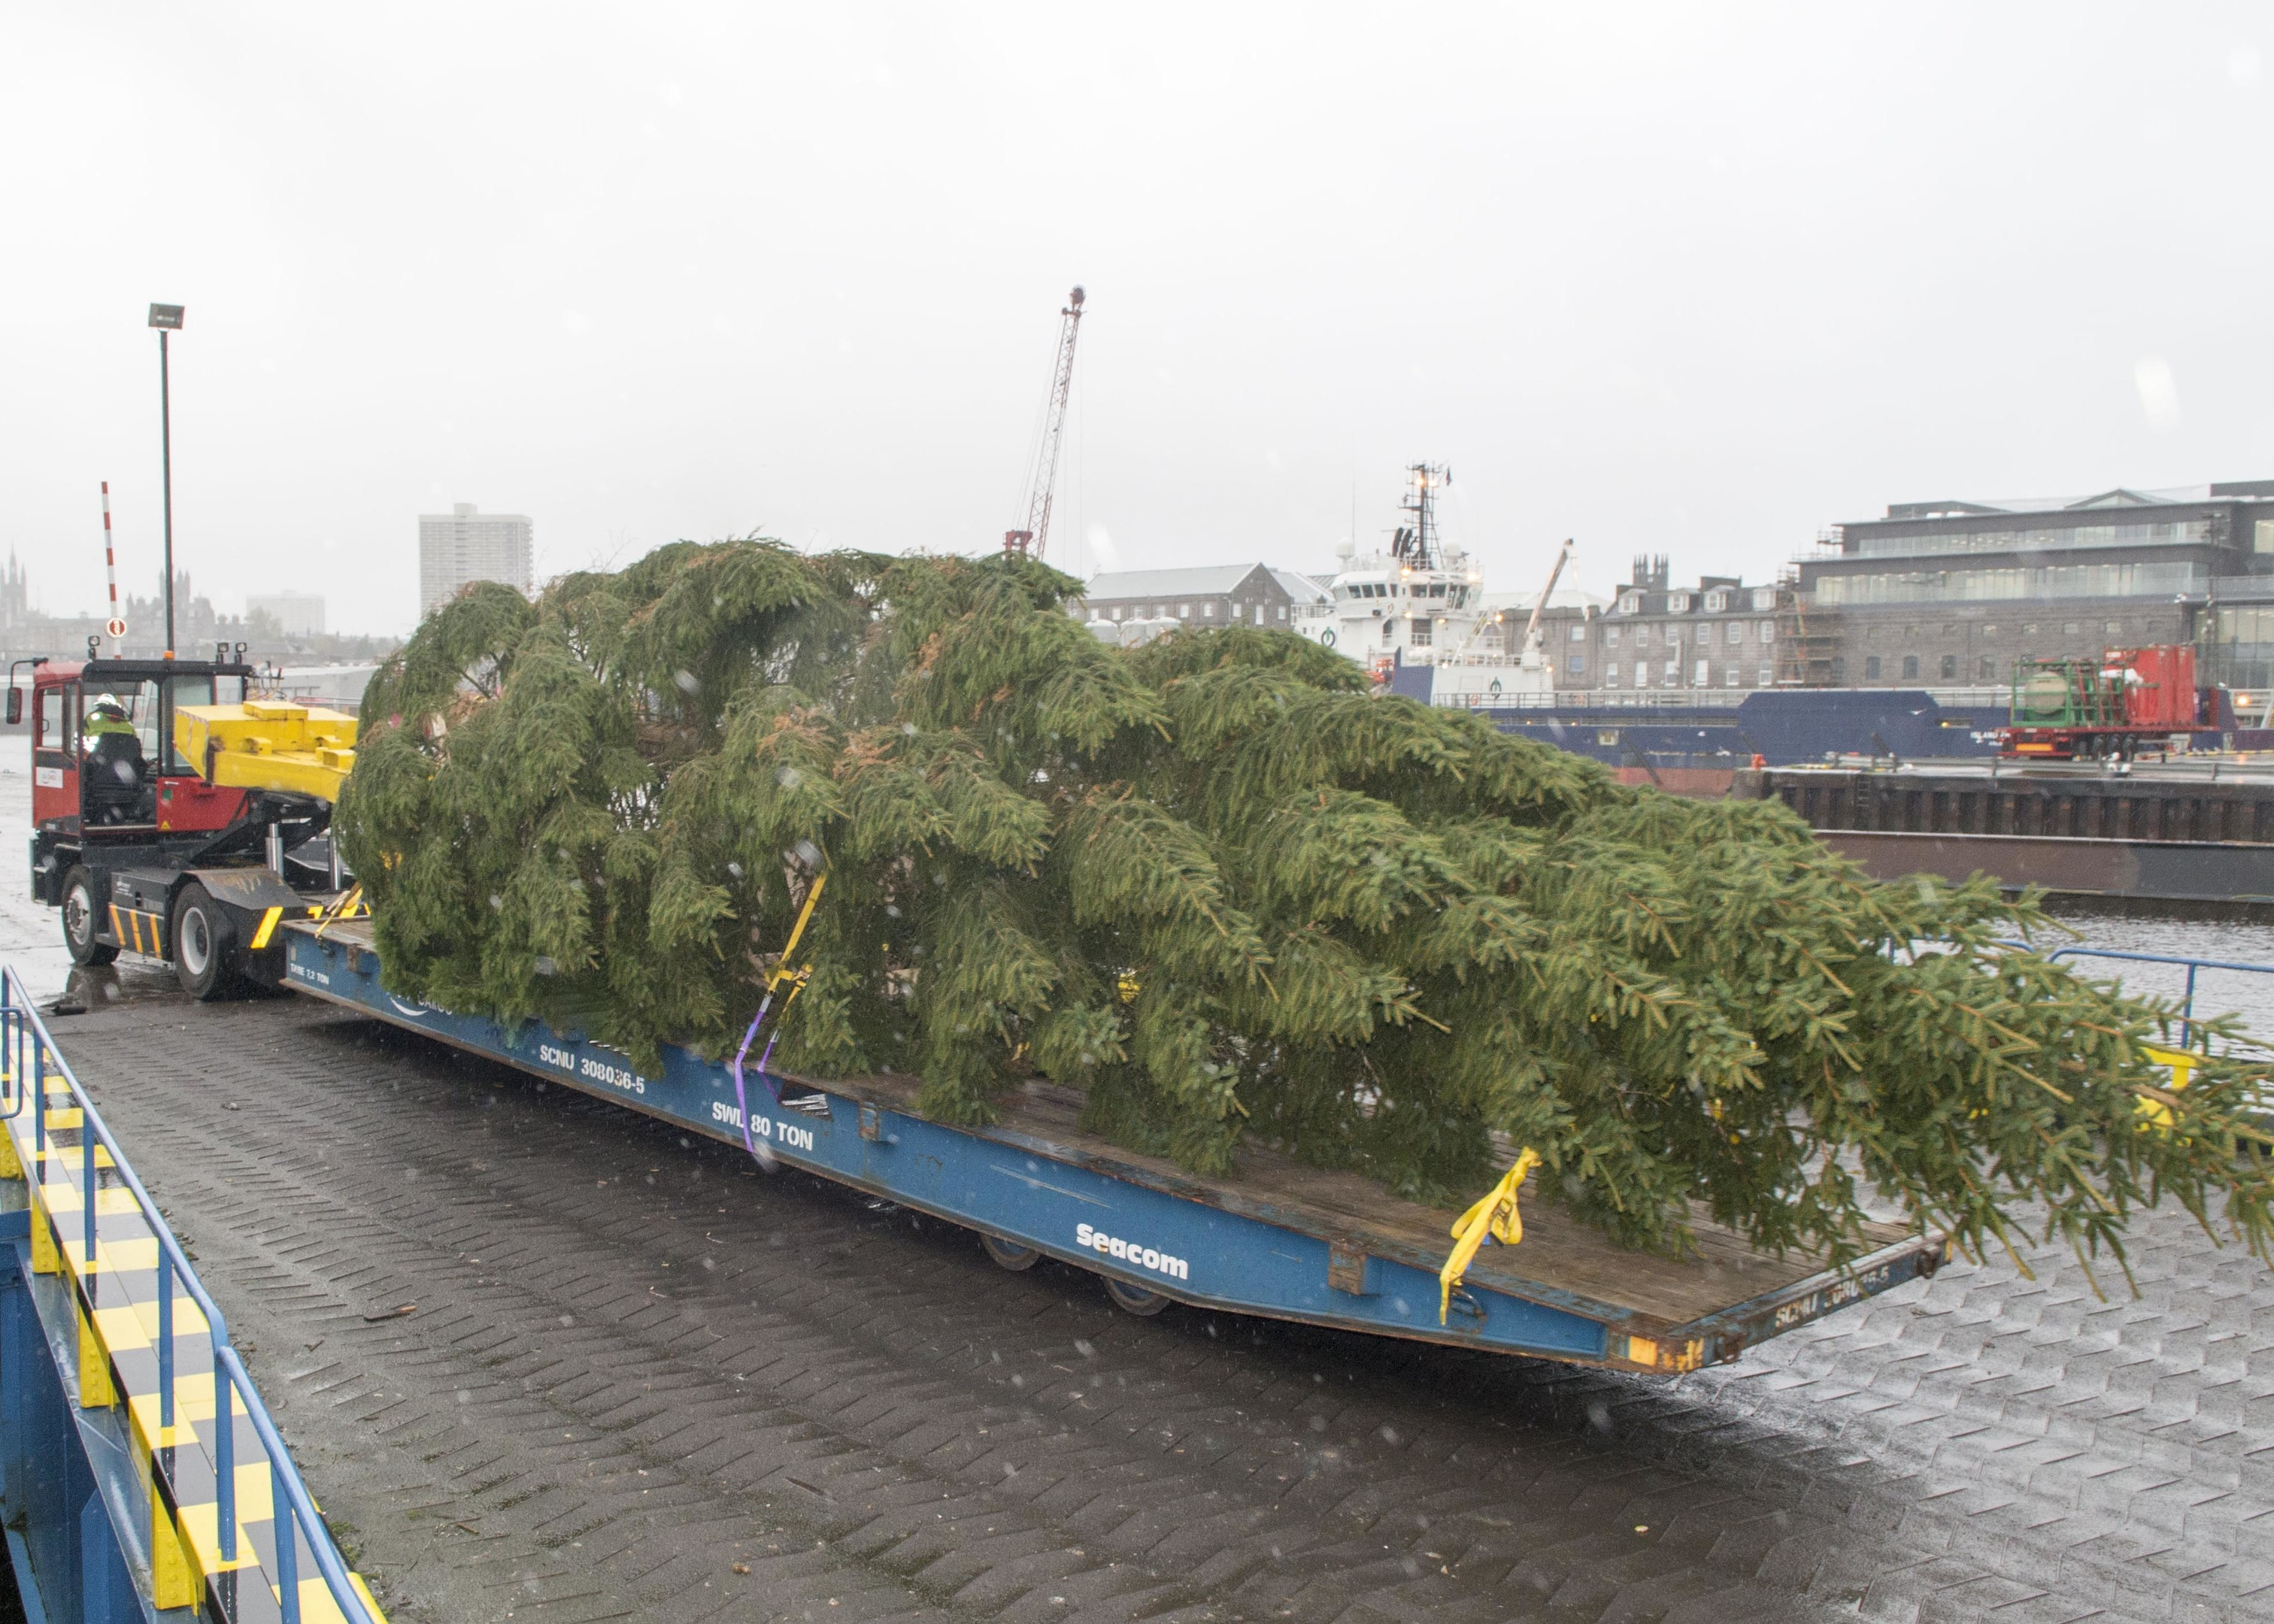 15/11/15 Aberdeen Christmas tree a gift from Stavanger arrives in city